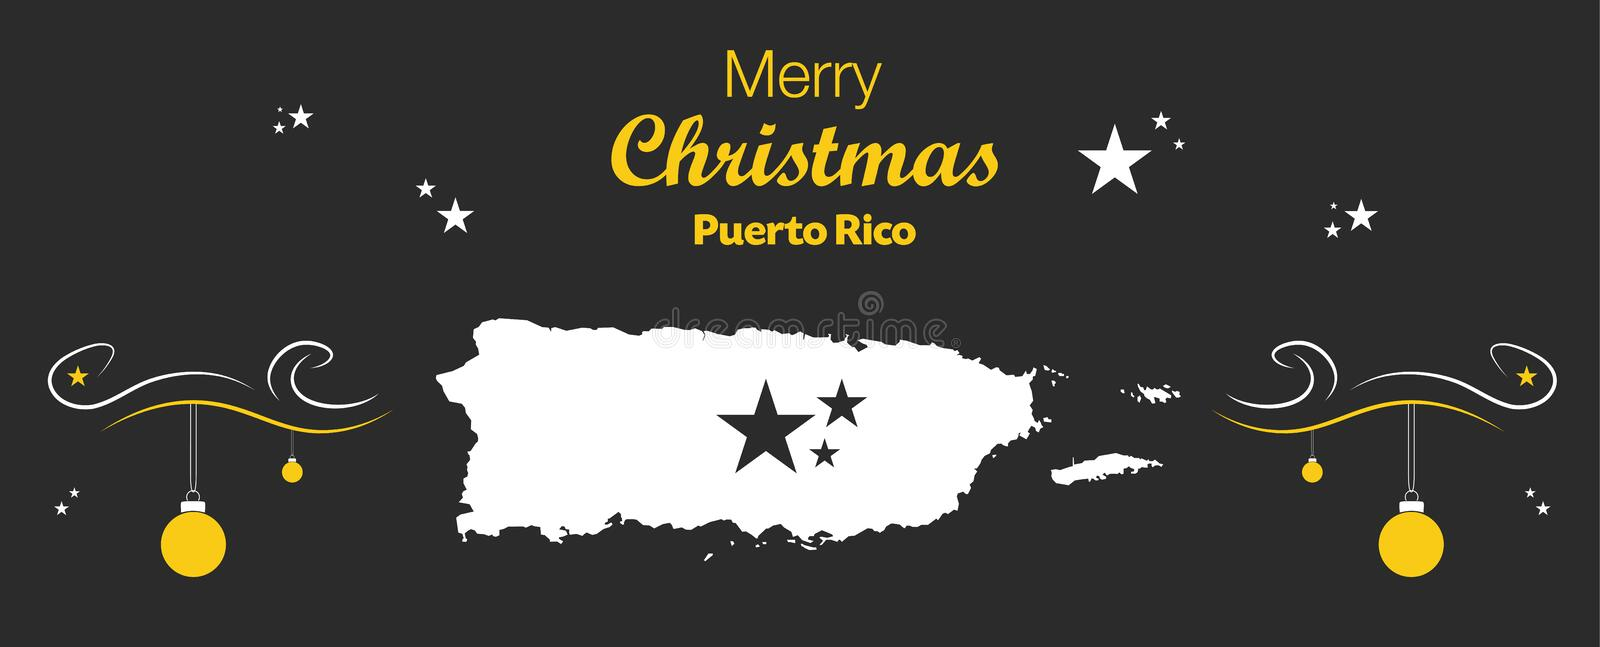 Merry Christmas theme with map of Puerto Rico stock illustration